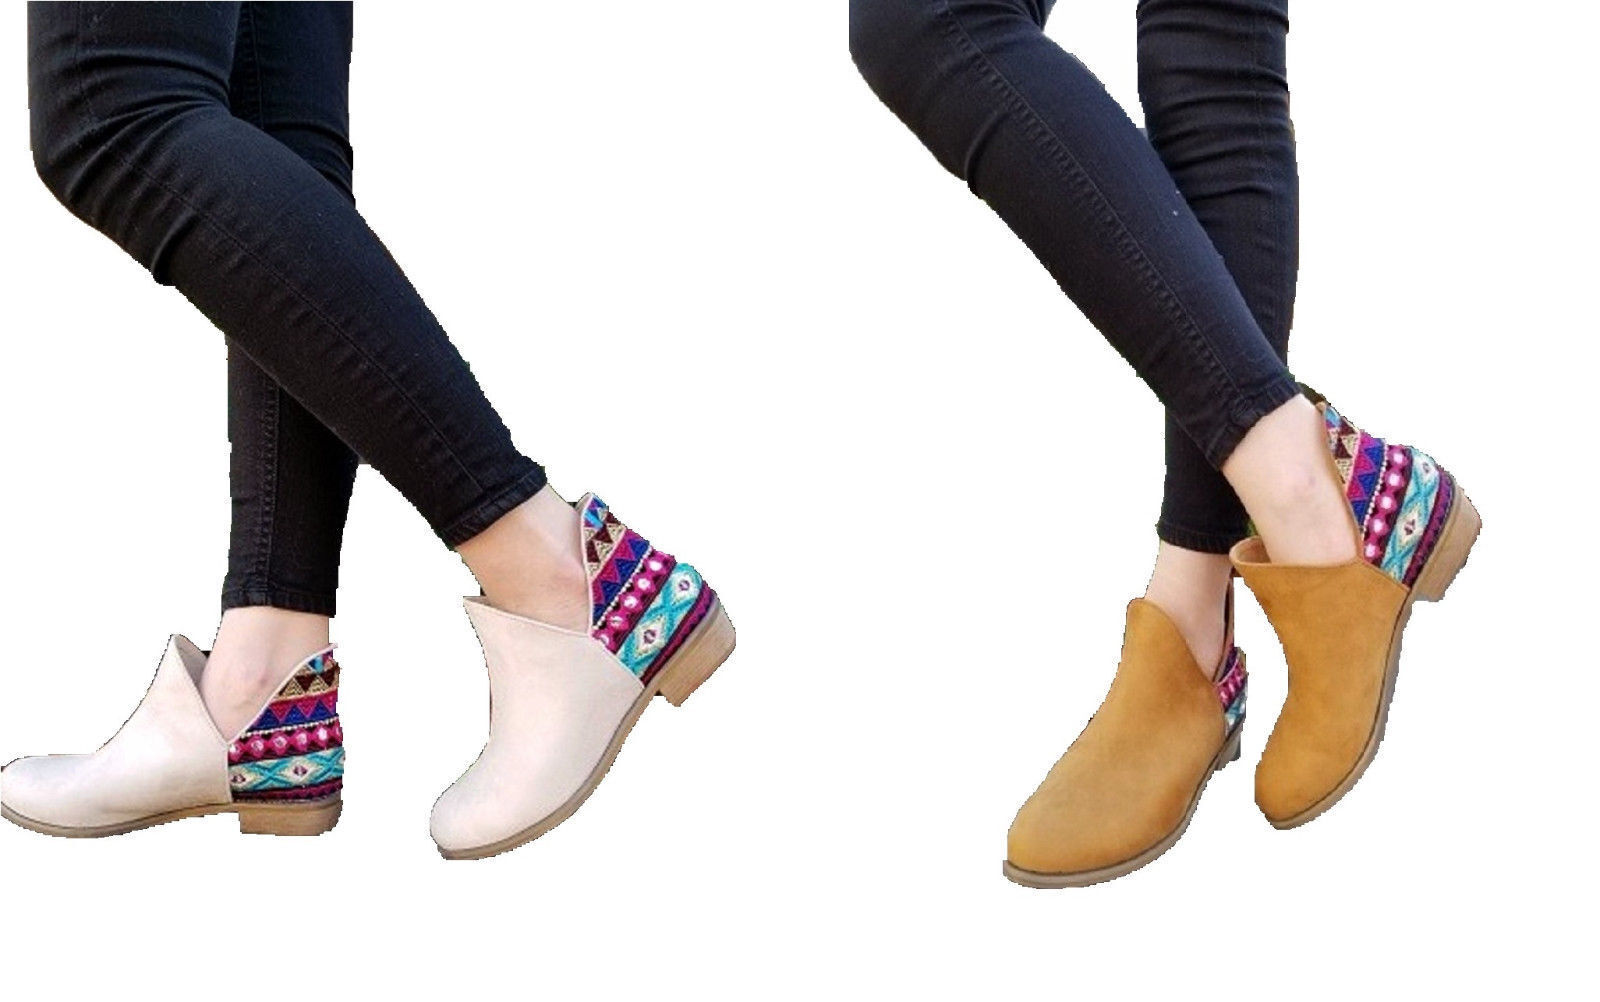 Aztec Geometric femmes Low Cut Dress Ankle bottes démarrageie Slip On chaussures marron Beige